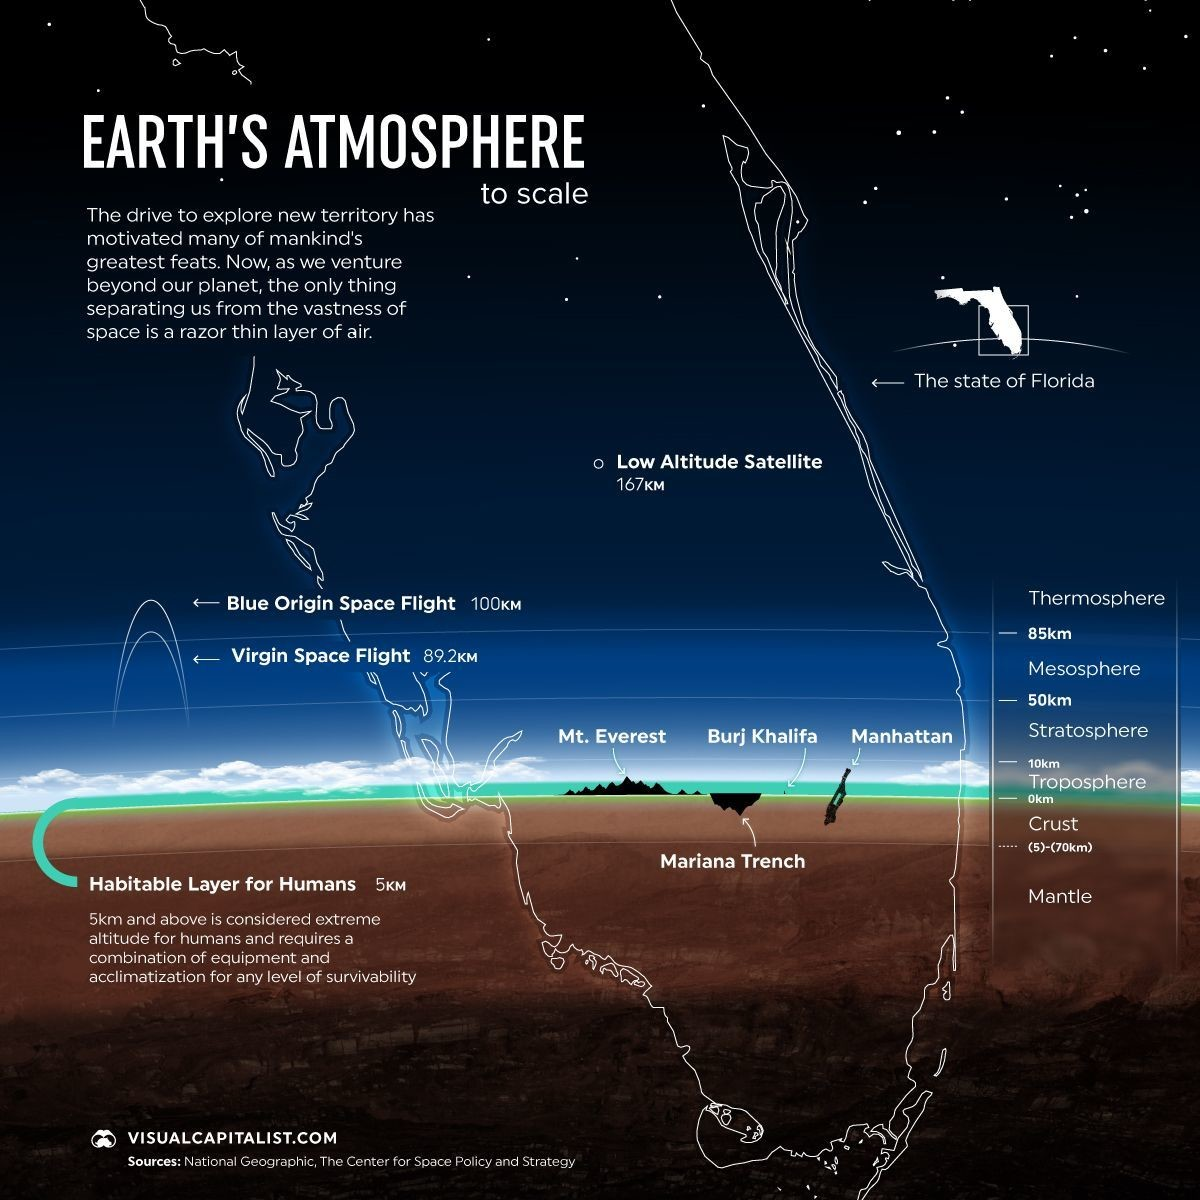 This image shows a new perspective on Earth's atmosphere.